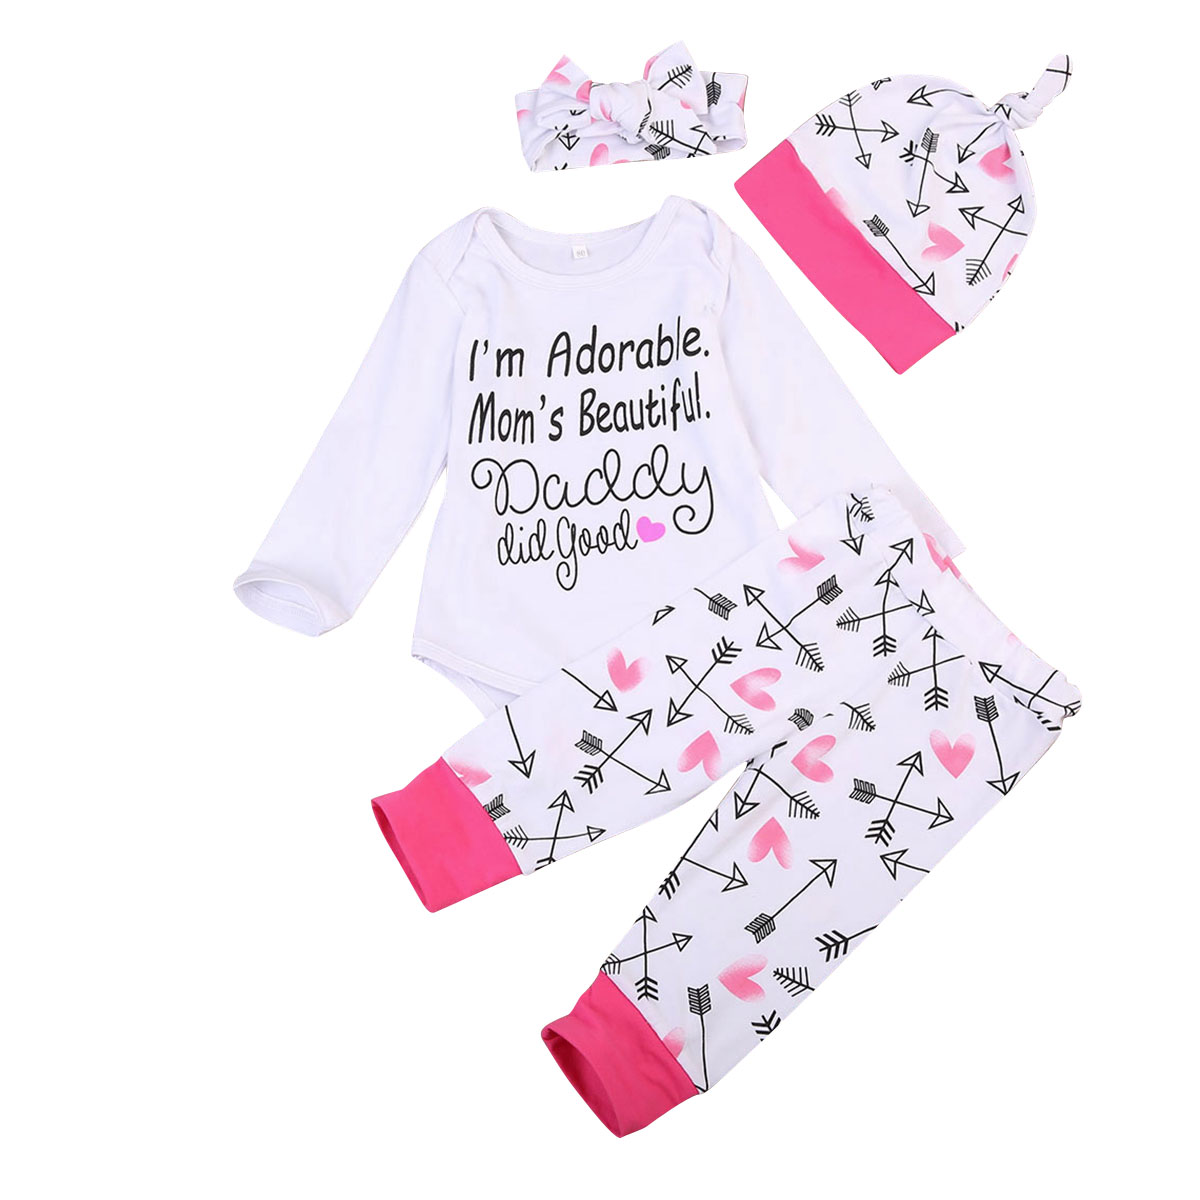 Pudcoco Fashion Autumn Newborn Baby Girl Boys Clothes Sets Cotton Tops Romper Pants Hat Home Outfits Set Clothes ratio 5 1 planetary gear nema 23 stepper motor with gearbox reducer motor l76mm 3a 1 8nm for cnc engraving milling